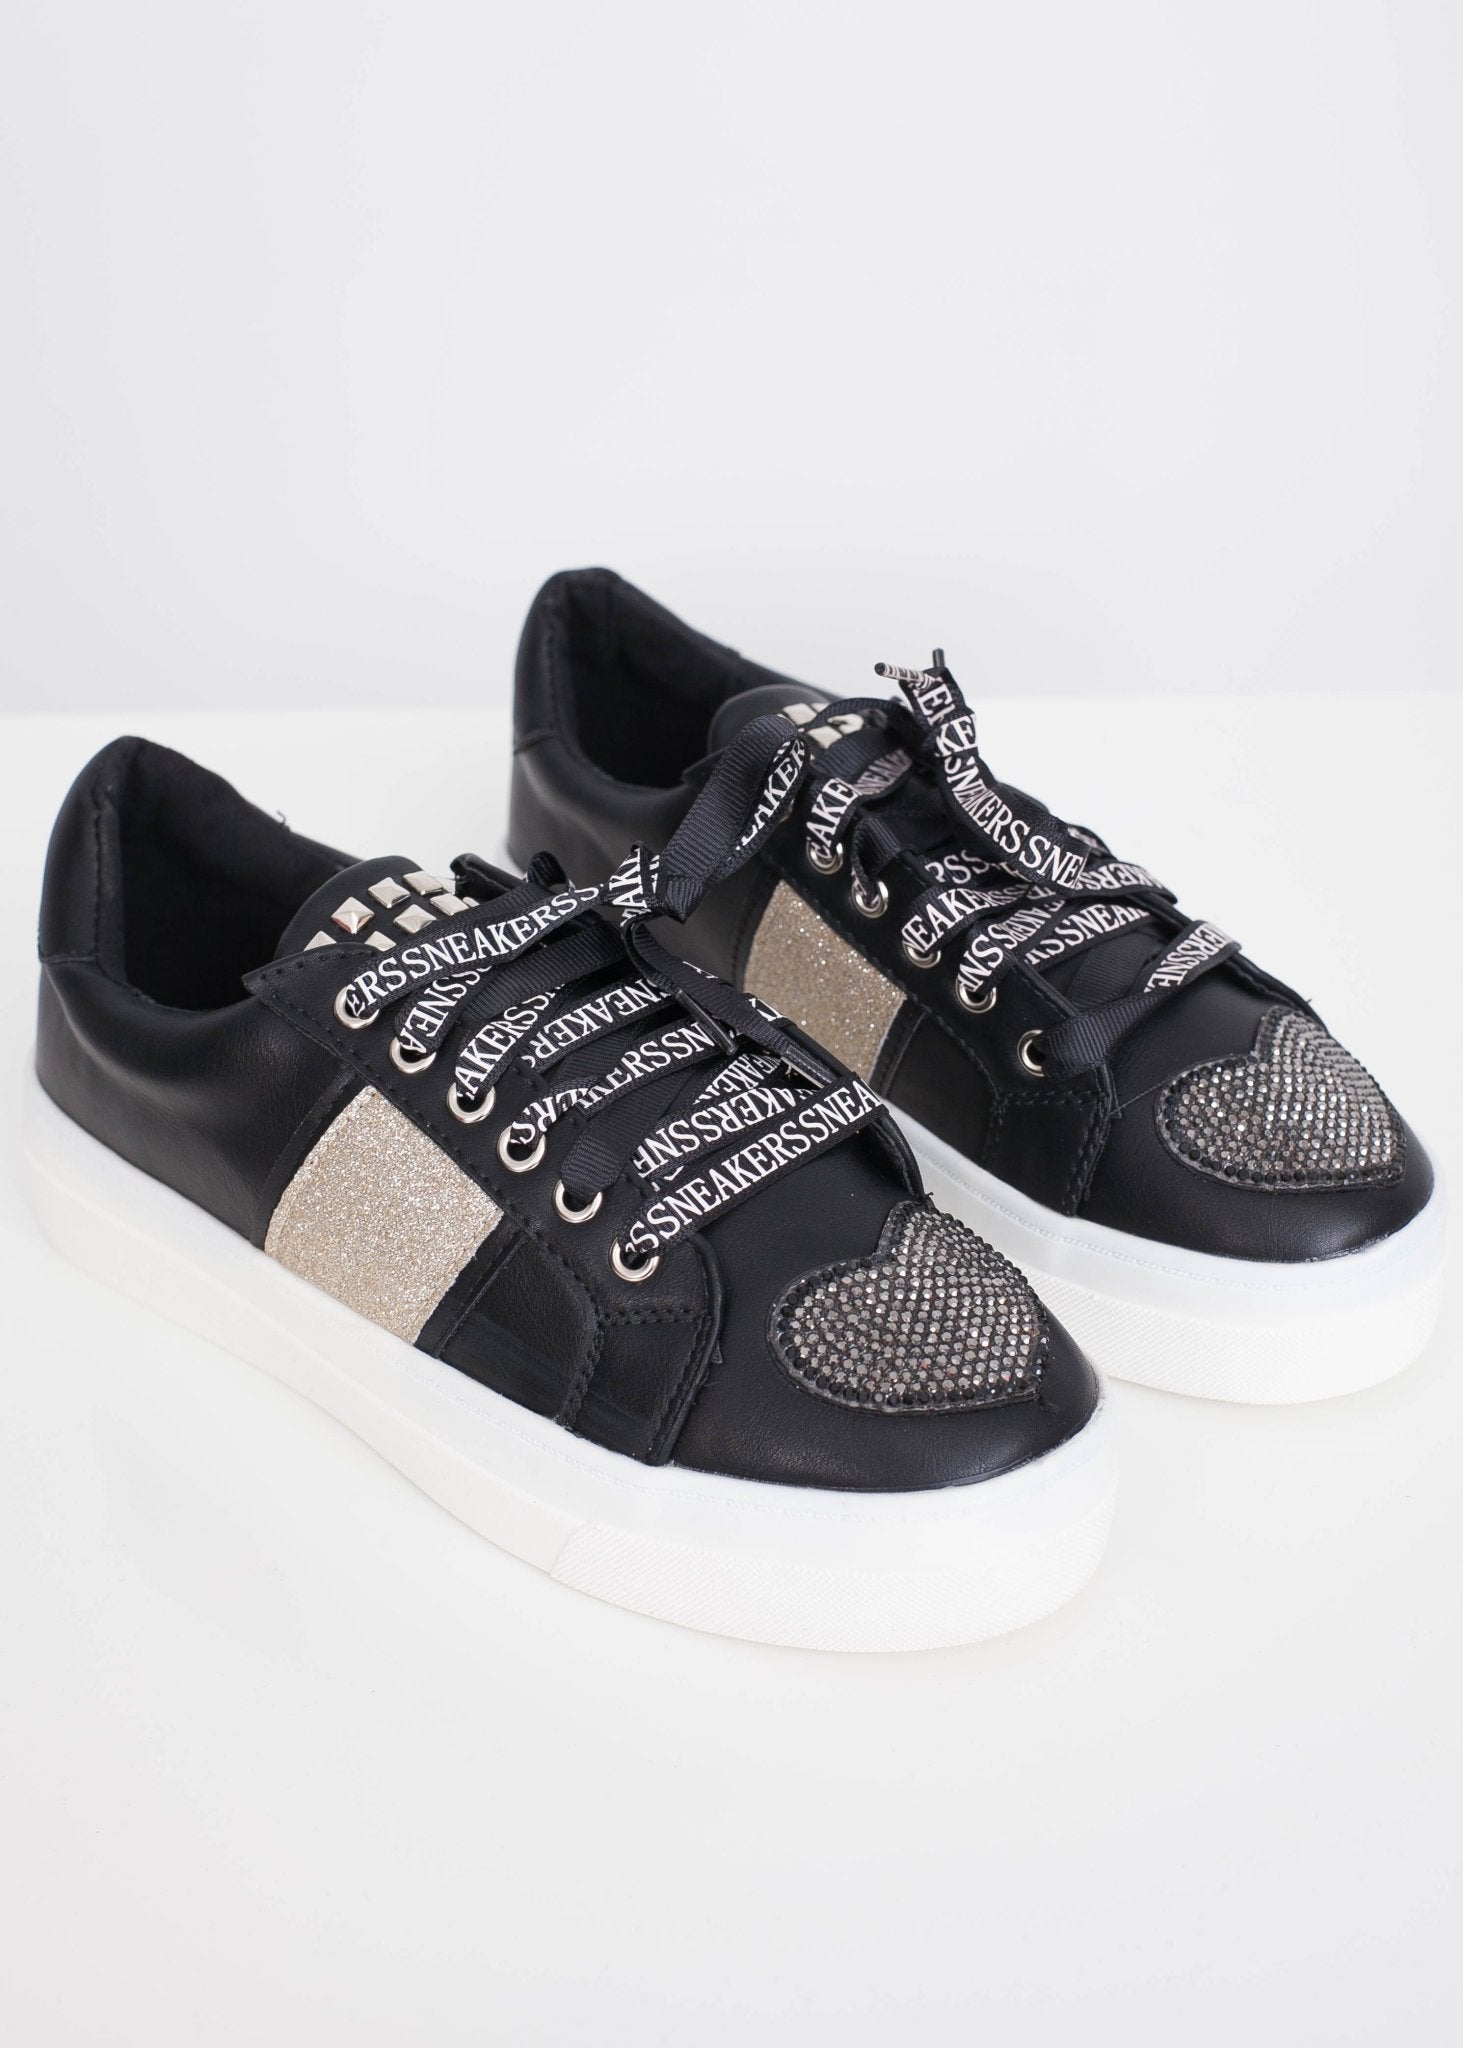 Priya Black Heart Embellished Trainers - The Walk in Wardrobe